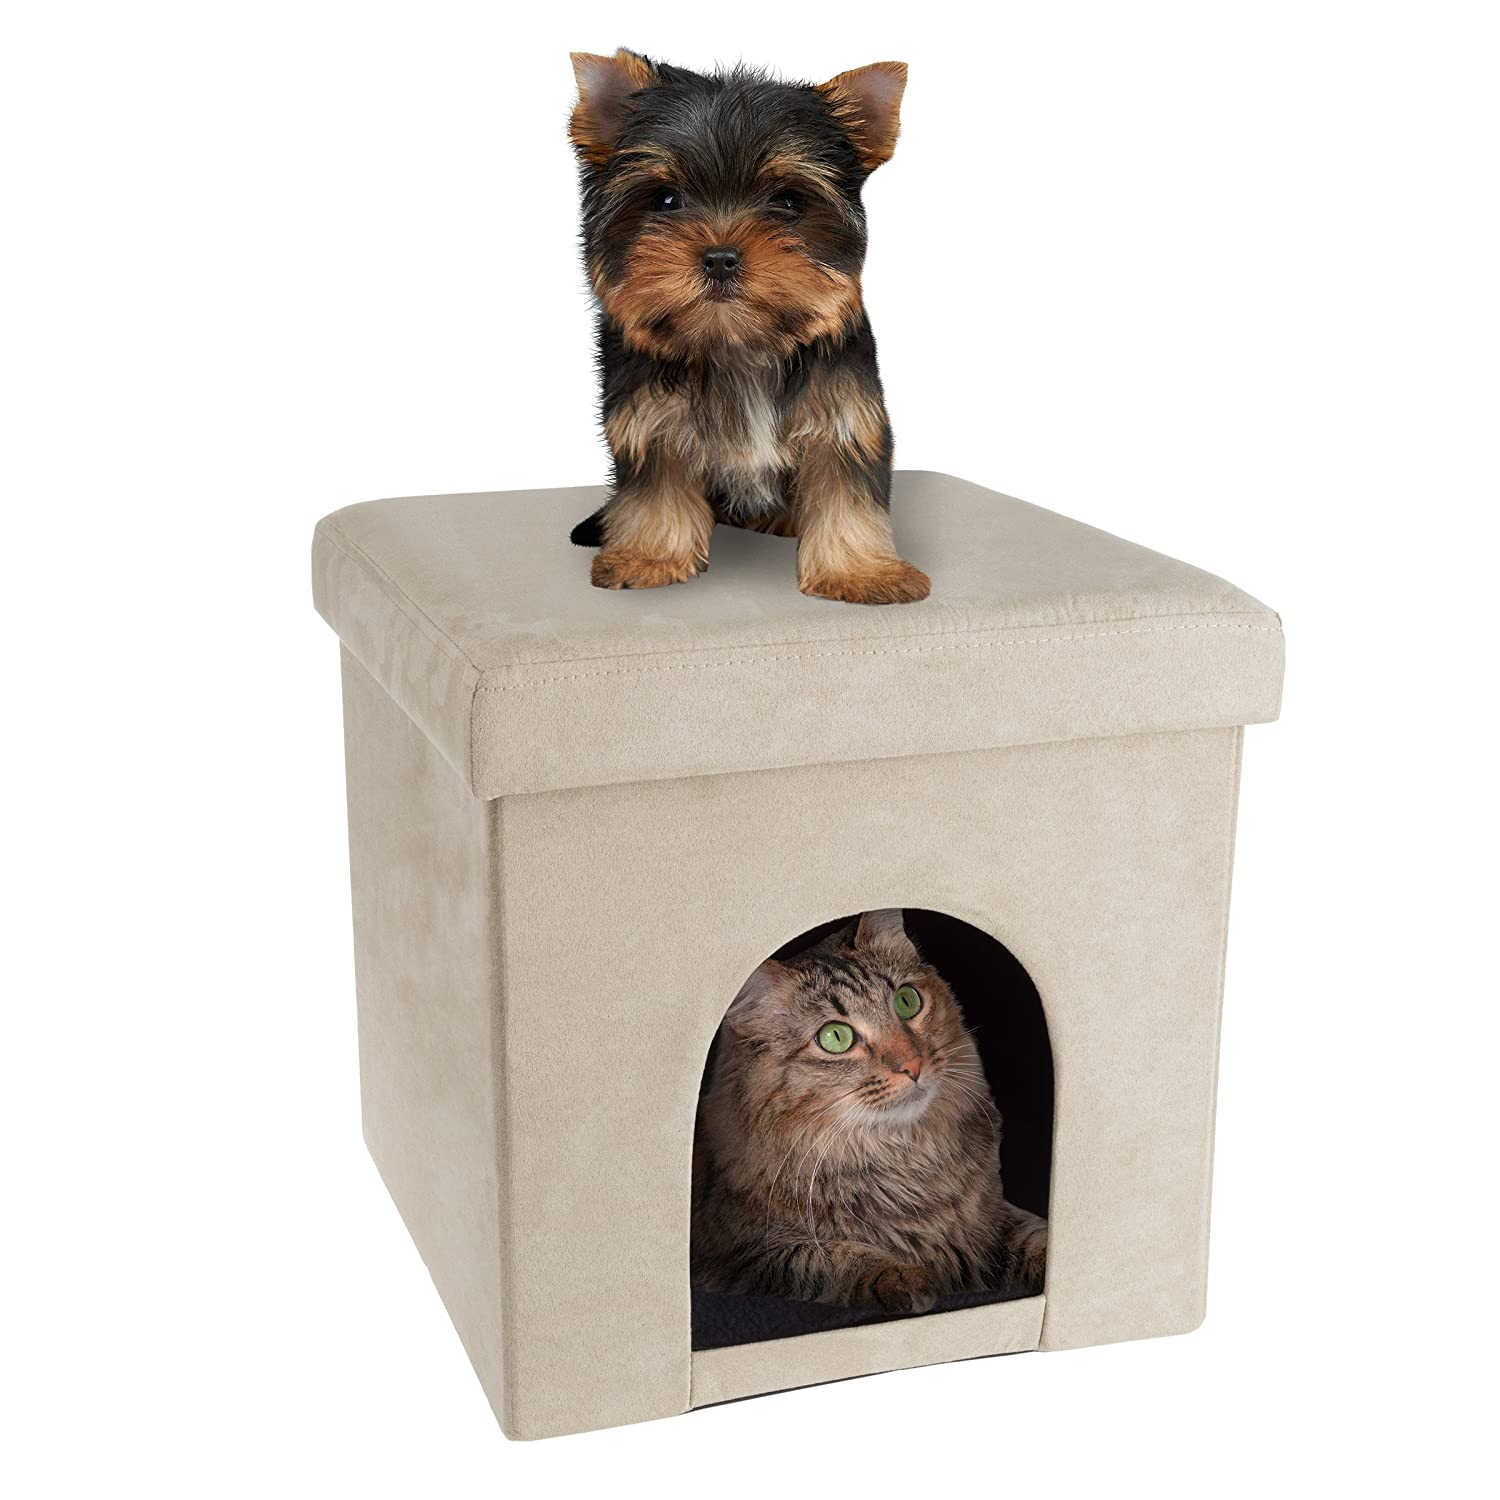 Swell Petmaker Pet House Ottoman Collapsible Multipurpose Cat Or Small Dog Bed Cube And Footrest With Cushion Top And Interior Pillow Inzonedesignstudio Interior Chair Design Inzonedesignstudiocom